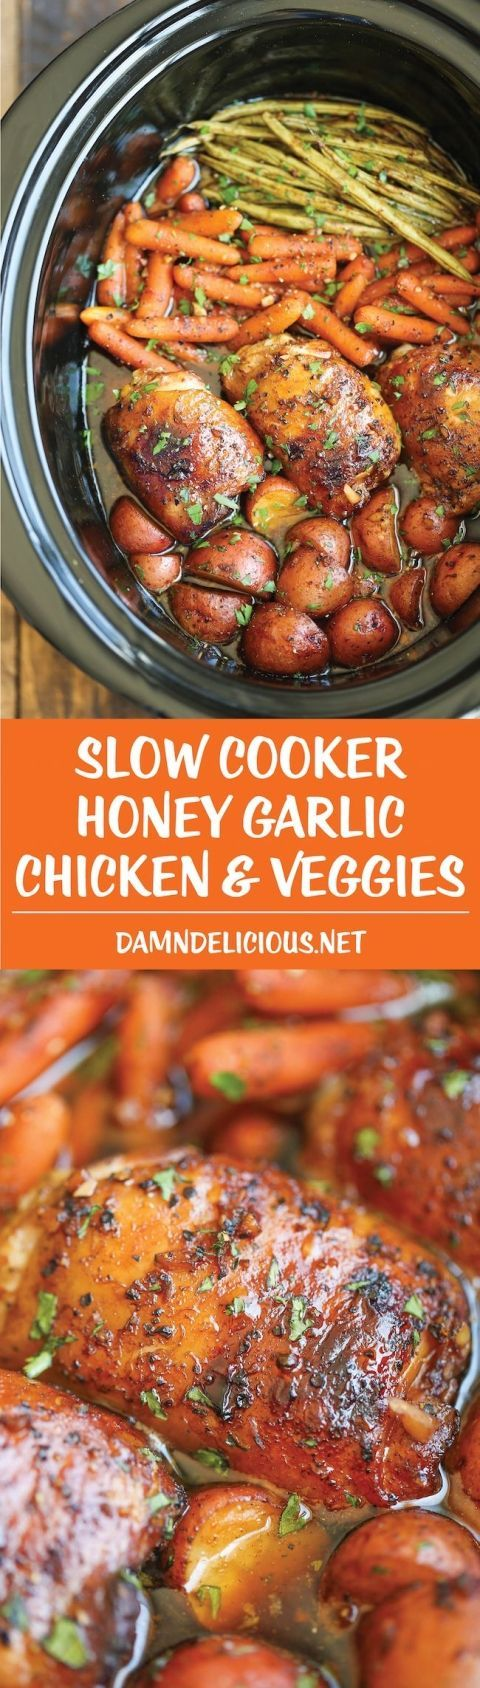 Slow Cooker Honey Garlic Chicken and Veggies Recipe - From Damn Delicious :: @damndelicious :: | Glamour Shots Photography << crock-pot recipe >>